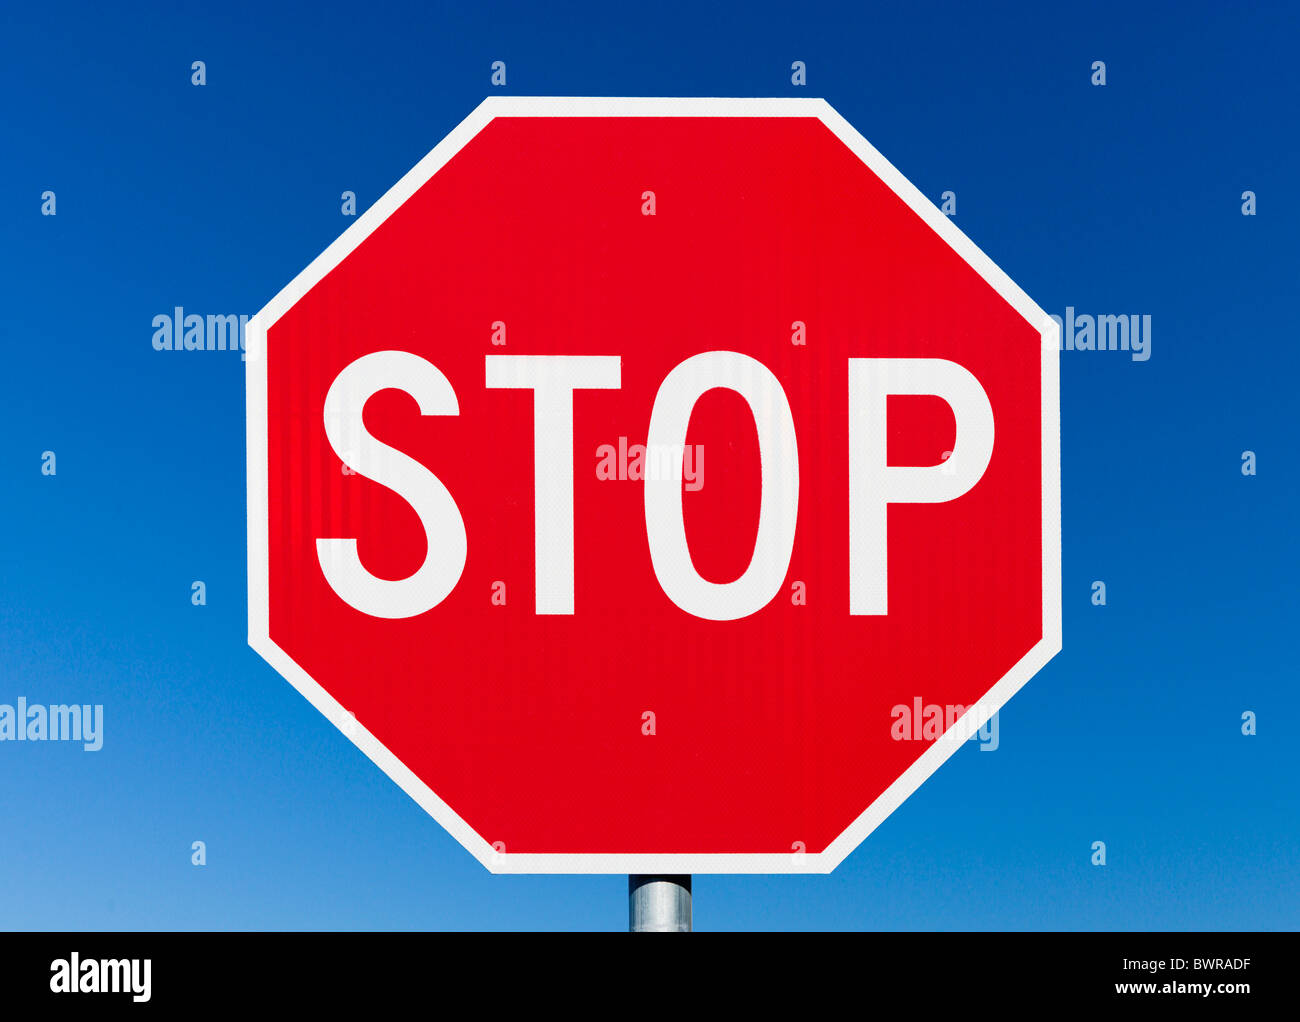 Stop sign, Florida, USA - Stock Image